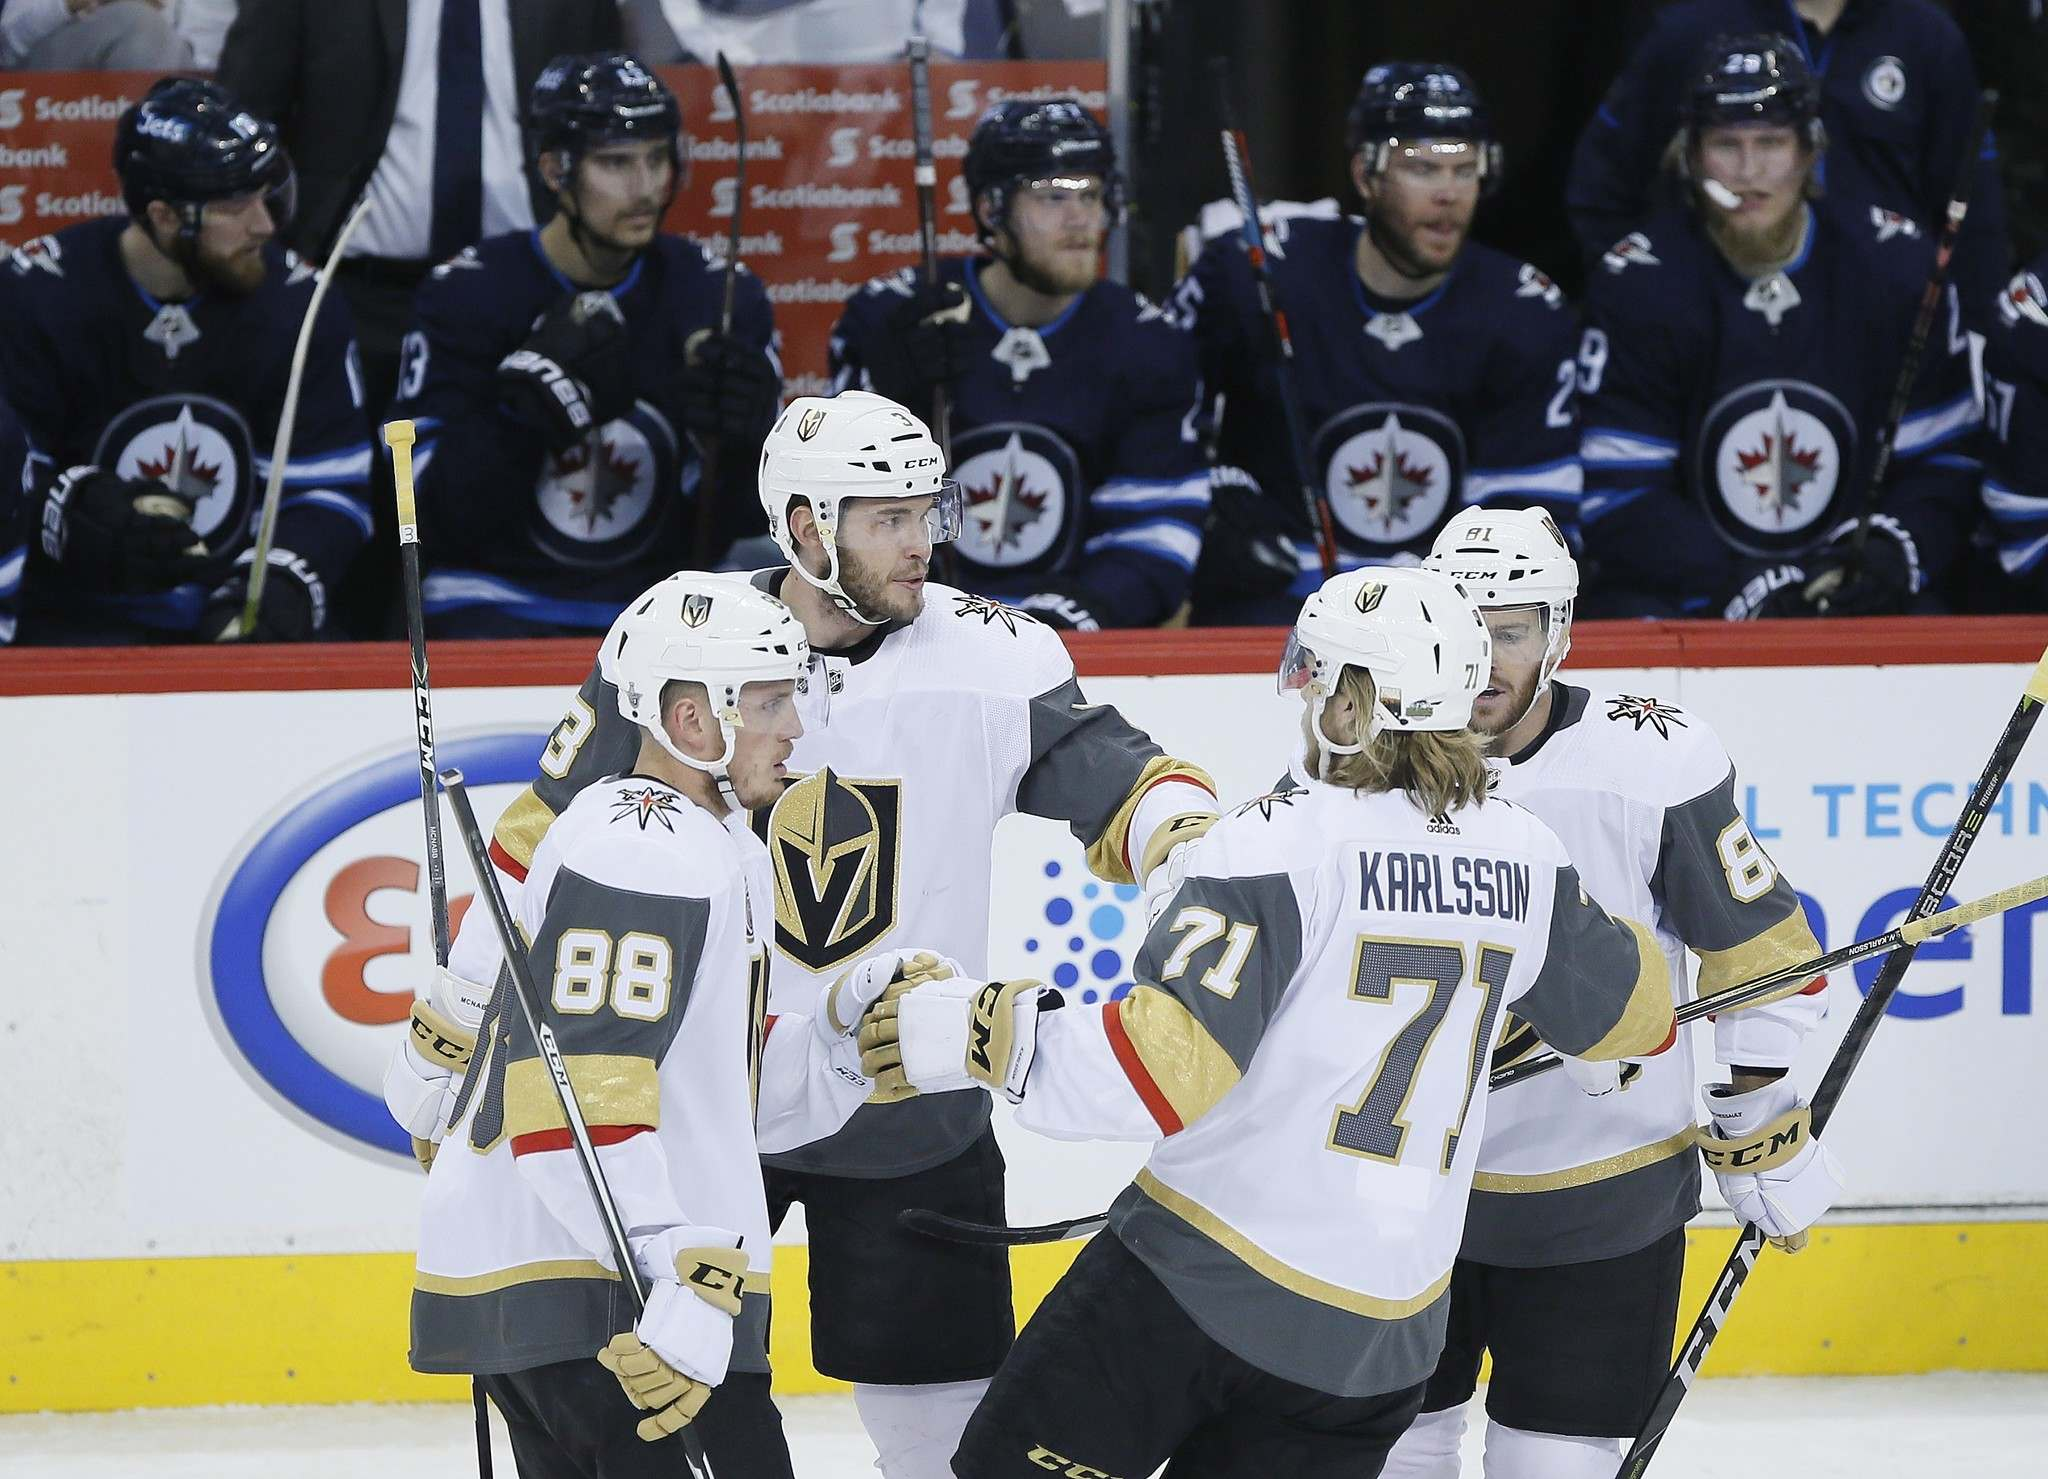 Vegas Golden Knights&#39; Nate Schmidt (88), Brayden McNabb (3), William Karlsson (71) and Jonathan Marchessault (81) celebrate McNabb&#39;s goal against the Winnipeg Jets during first period of game one action in the NHL Western Conference Final in Winnipeg on Saturday, May 12, 2018. THE CANADIAN PRESS/John Woods</p>